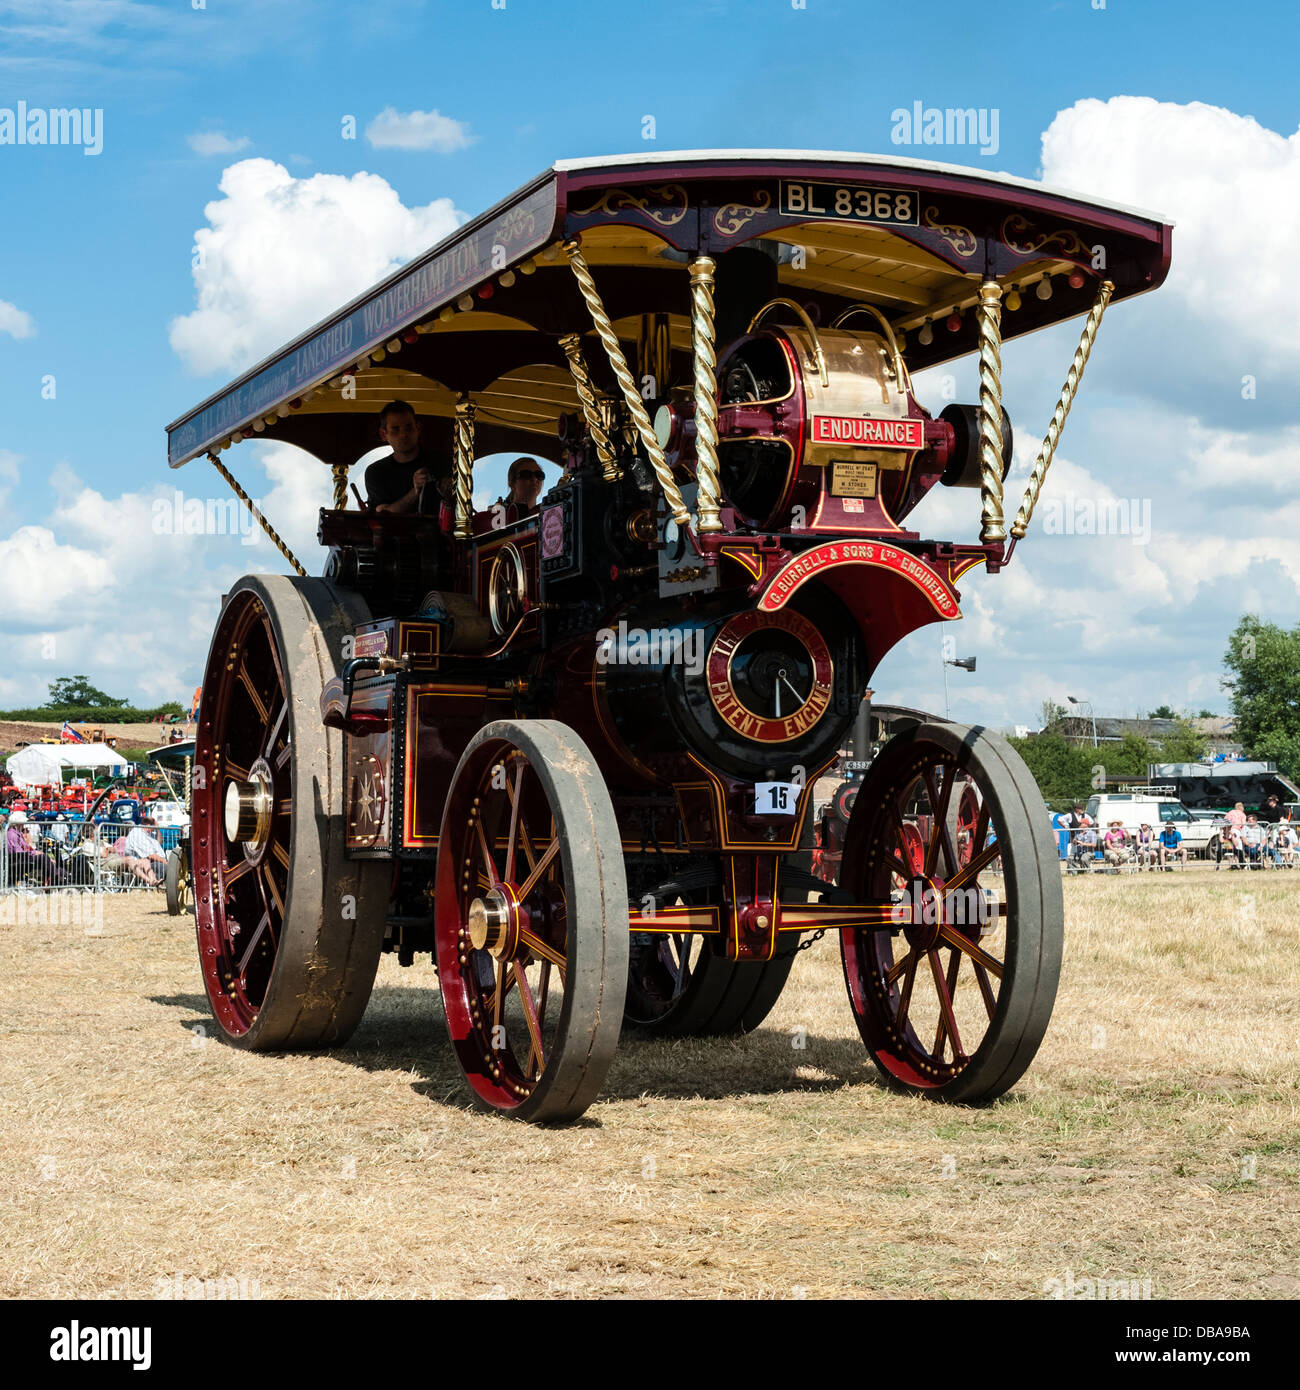 Burrell traction engine BL 8368 Endurance at Welland steam rally, near the Malvern Hills, Worcestershire, UK. - Stock Image